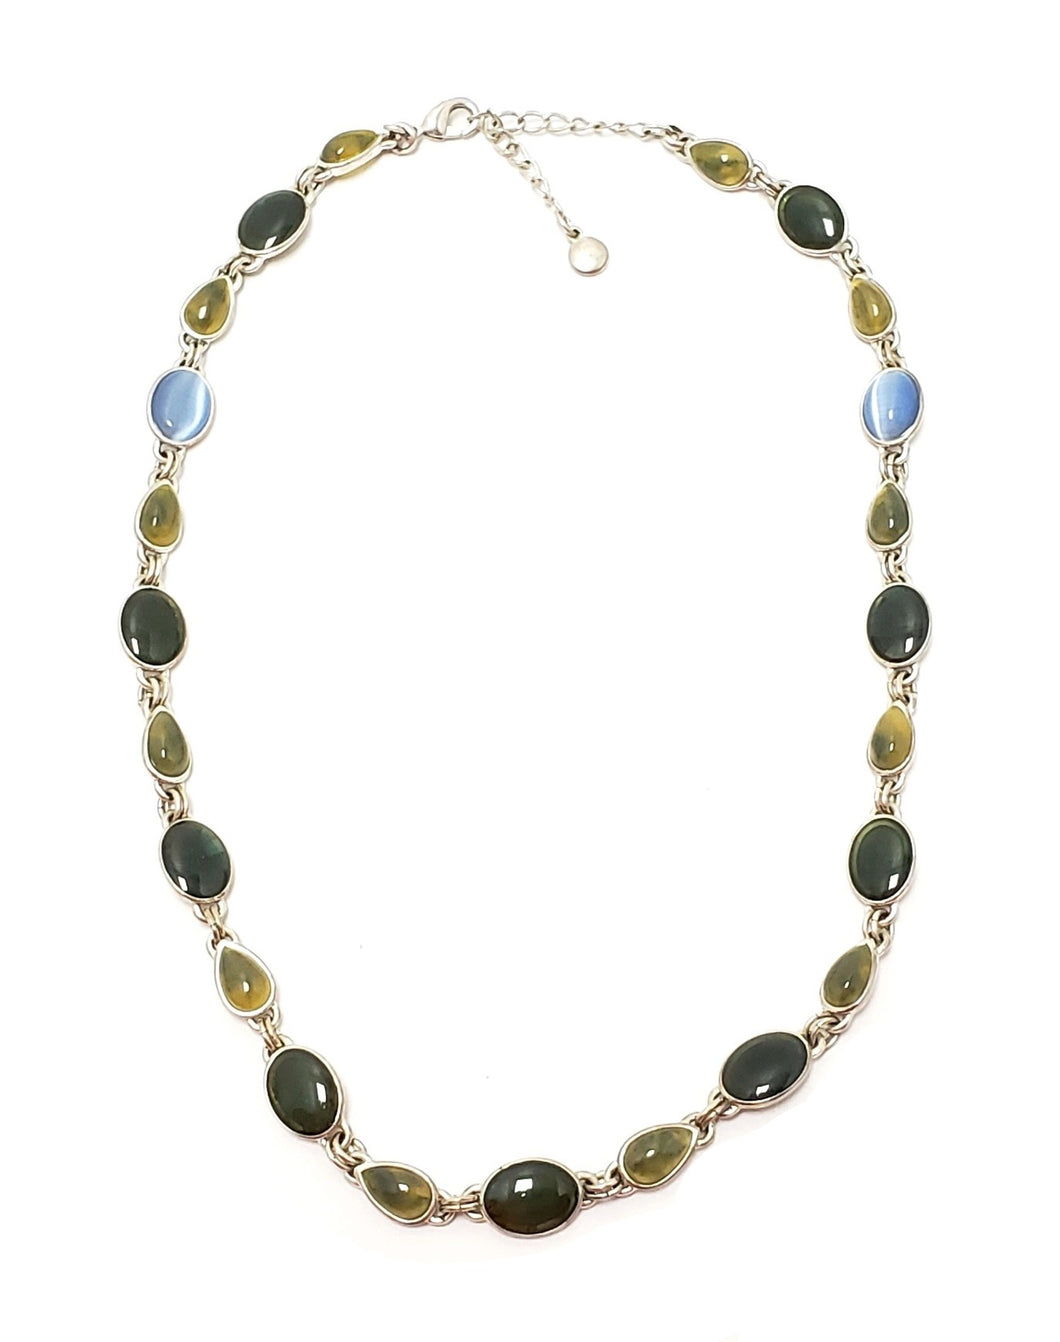 Liz Claiborne Necklace